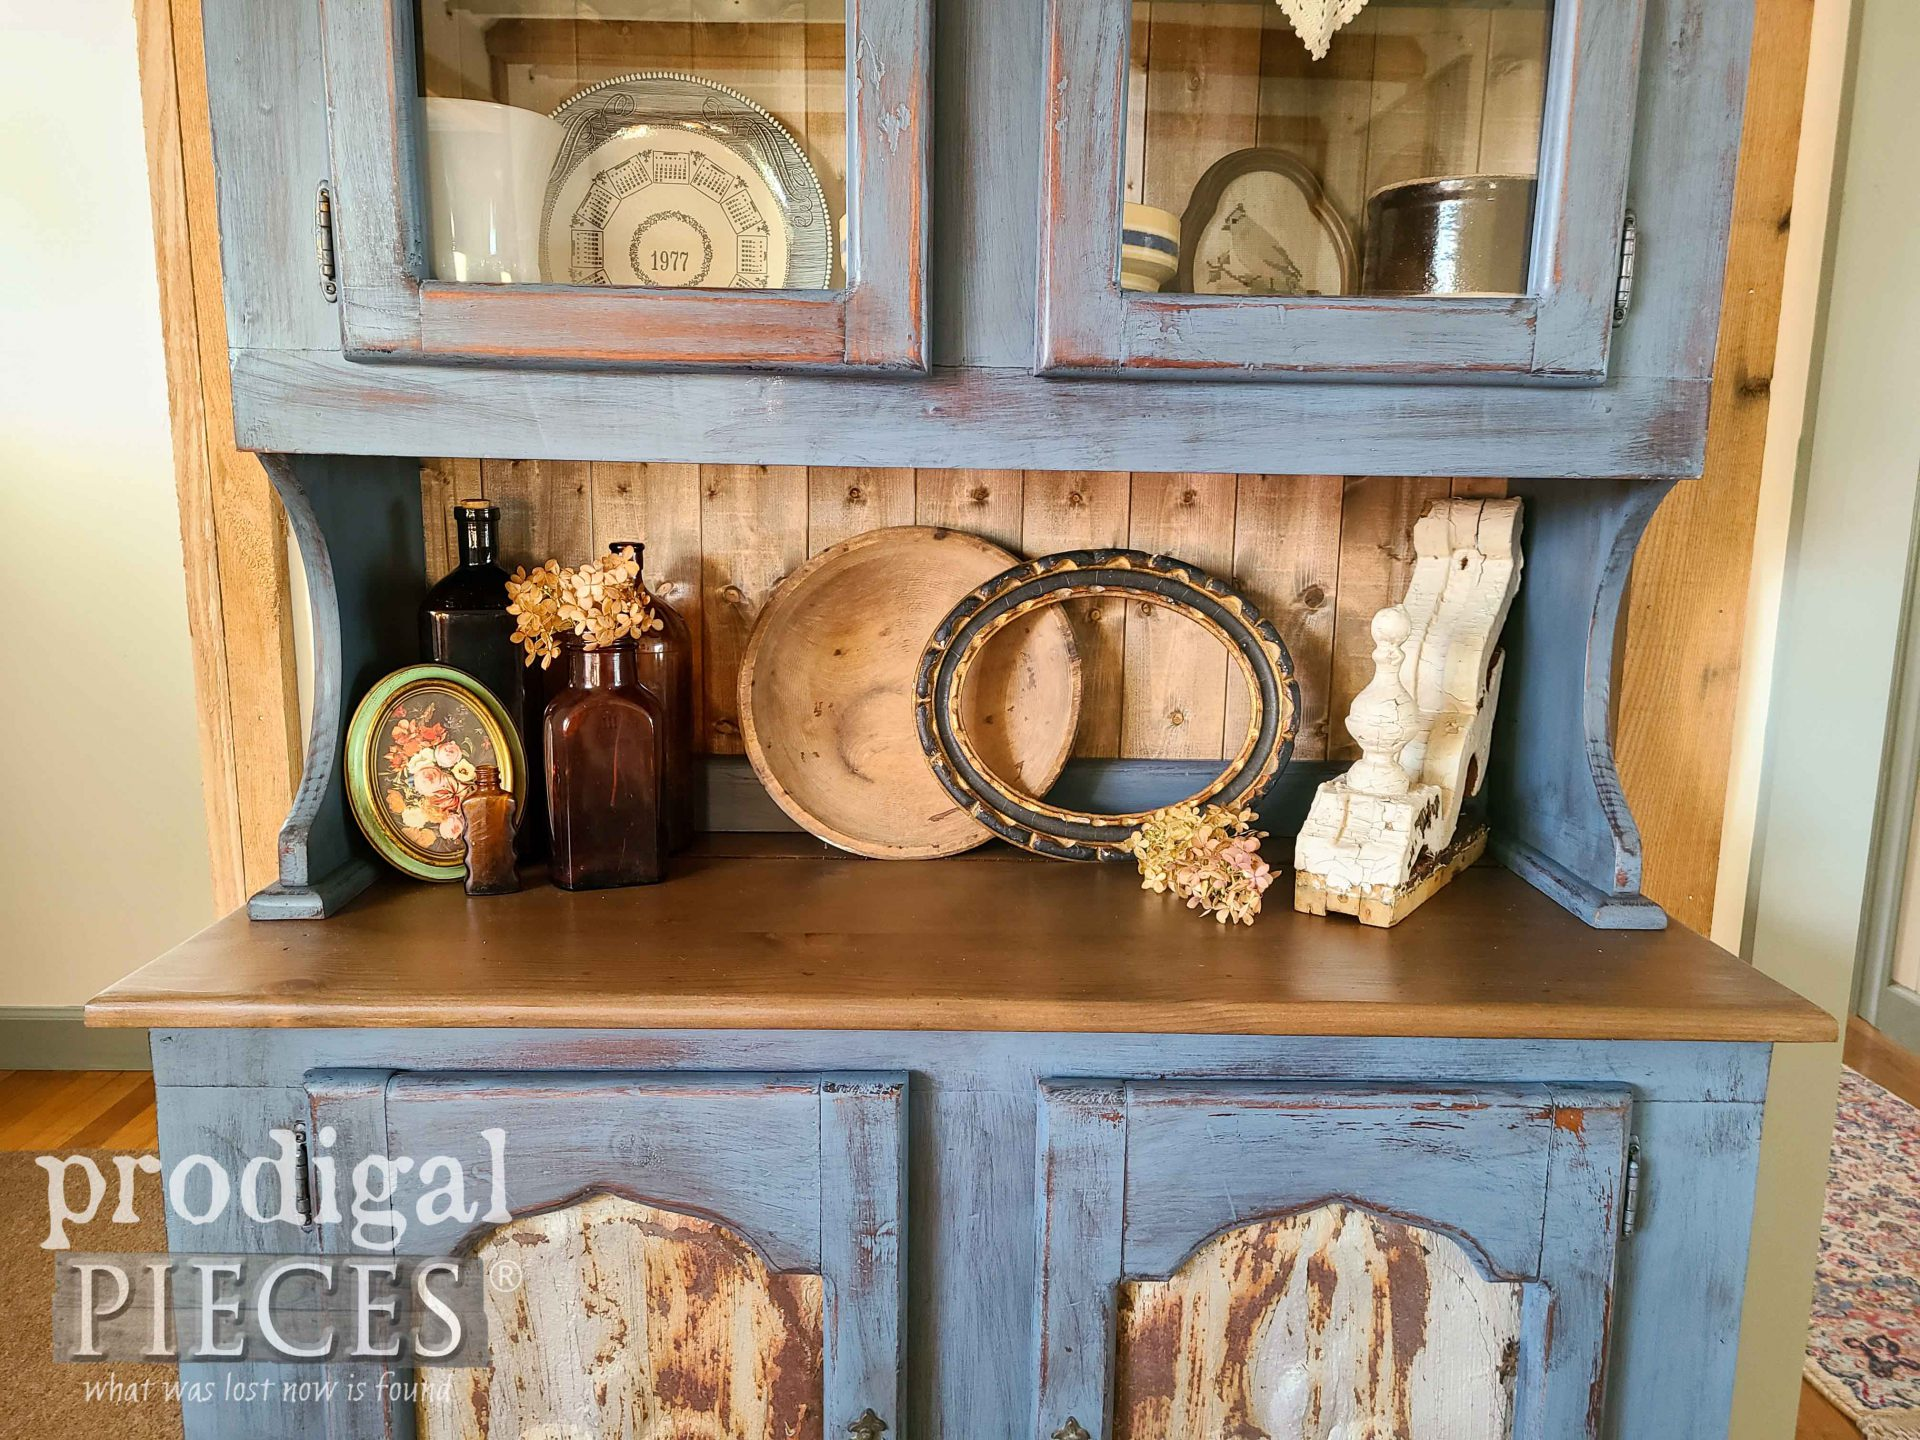 Farmhouse Pine Hutch with Salvaged Style by Larissa of Prodigal Pieces | prodigalpieces.com #prodigalpieces #furniture #homedecor #farmhouse #vintage